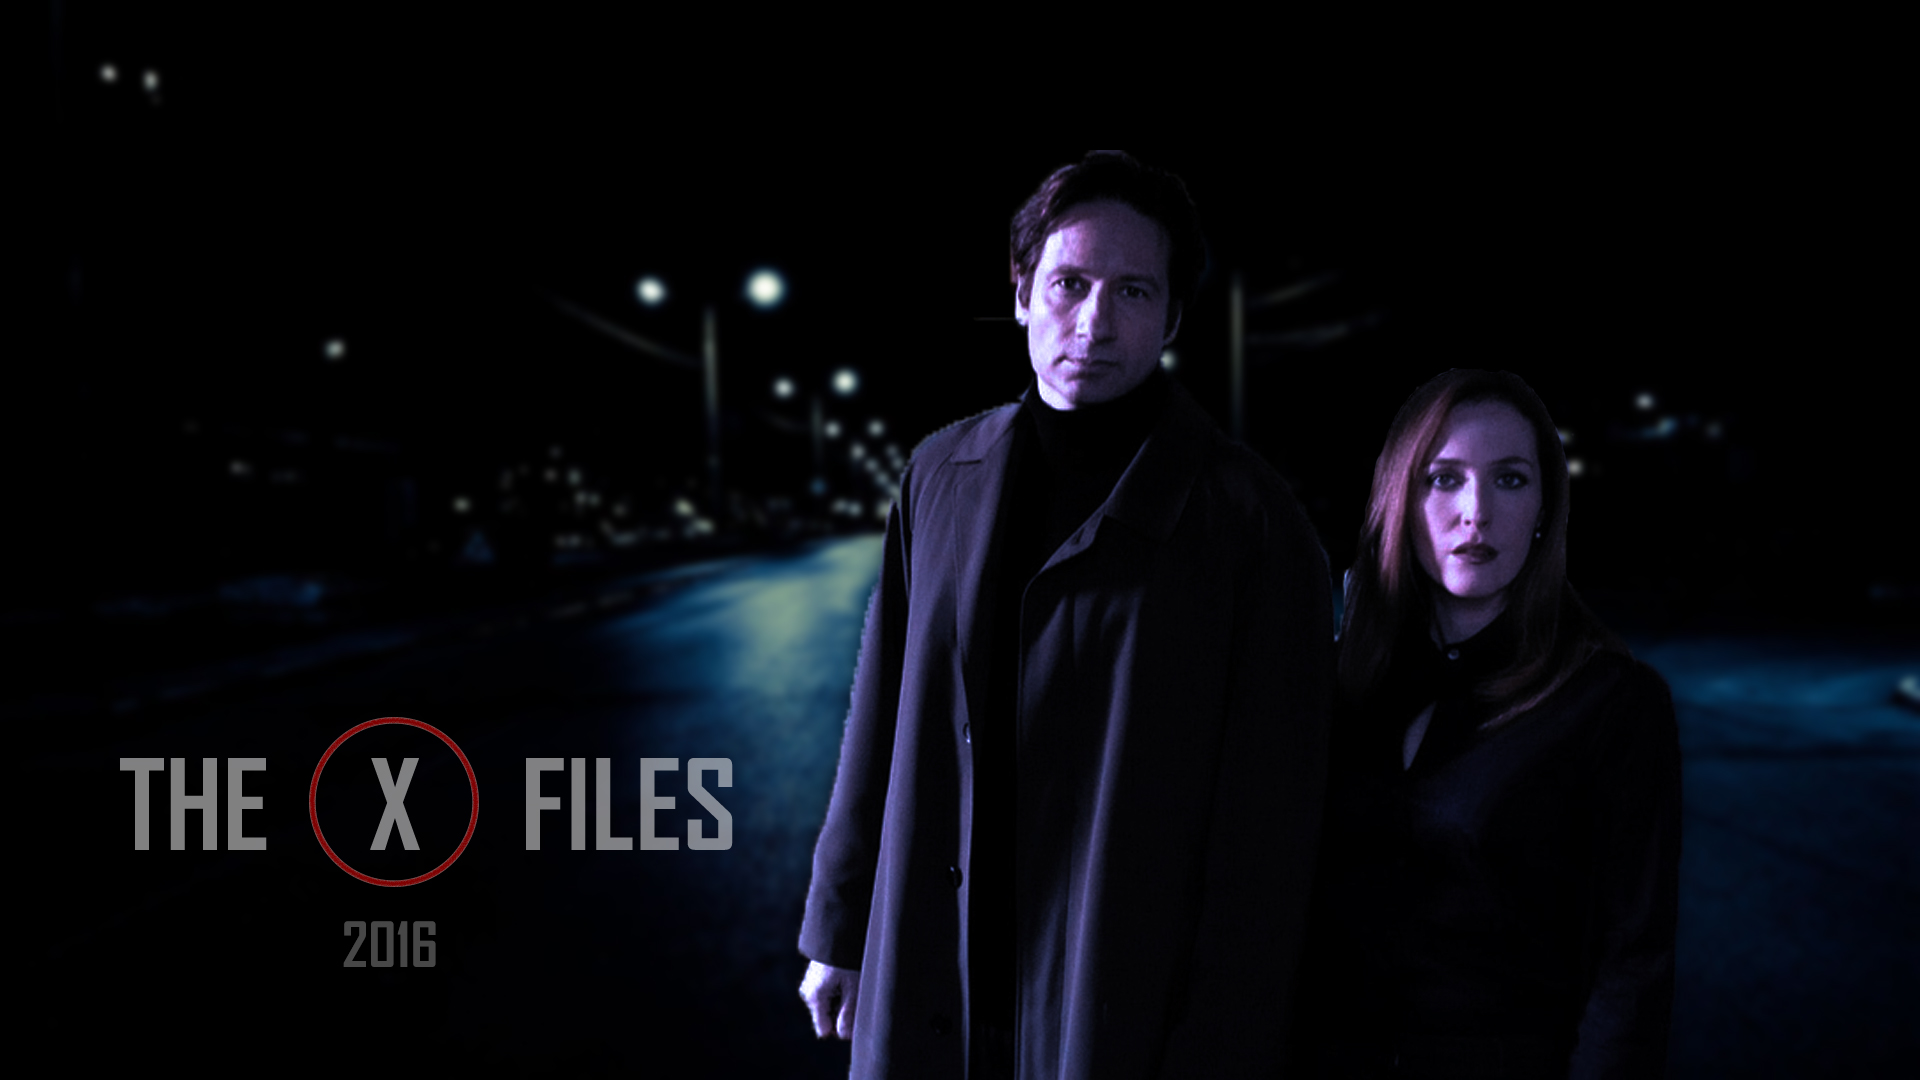 the x files 2016 wallpapers high resolution and quality